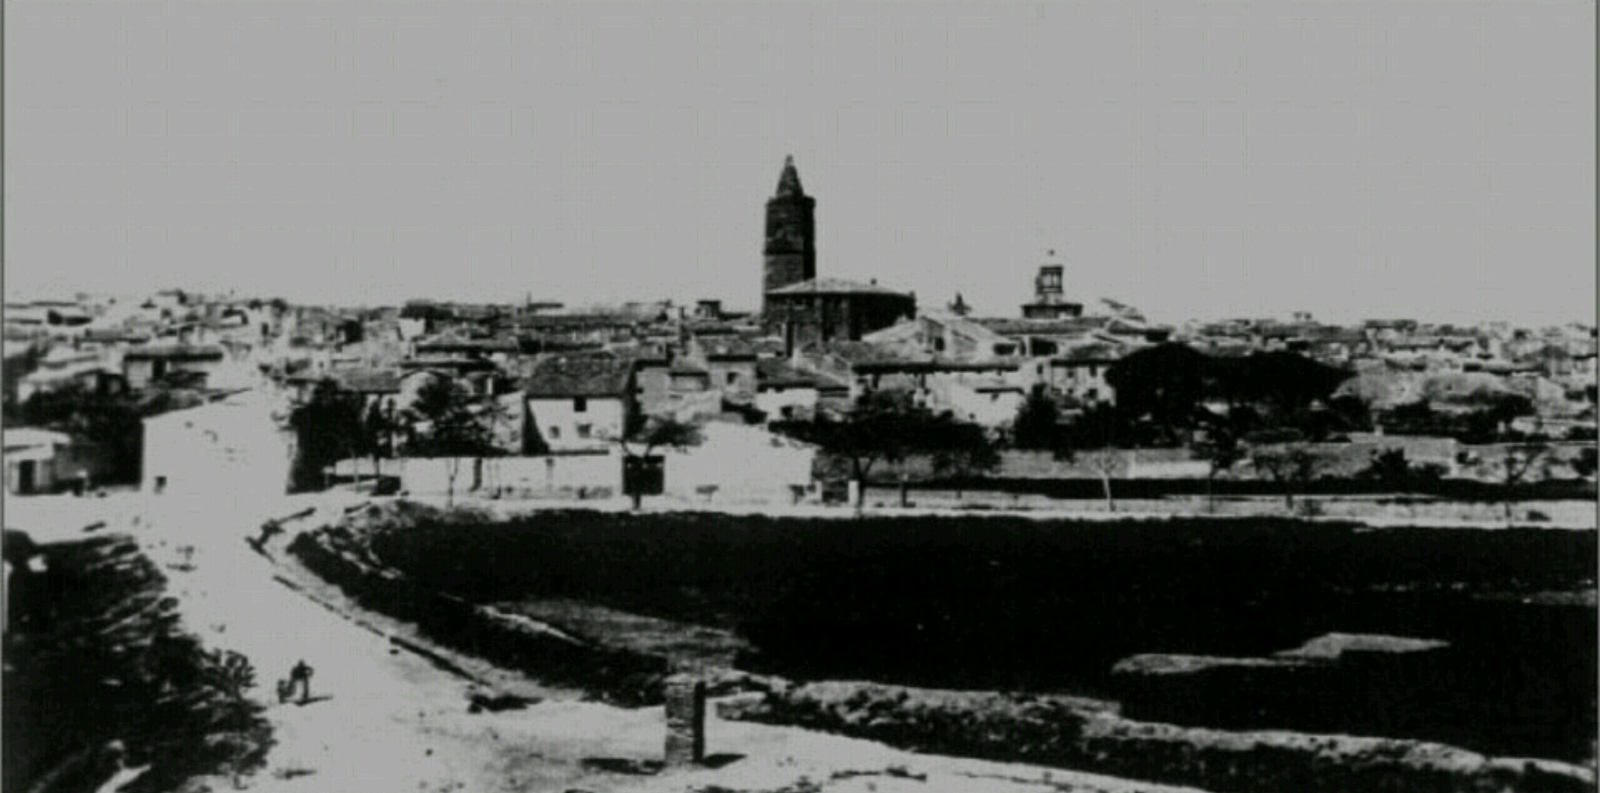 A very early photograph of Belchite taken prior to the battle in the Spanish Civil War.